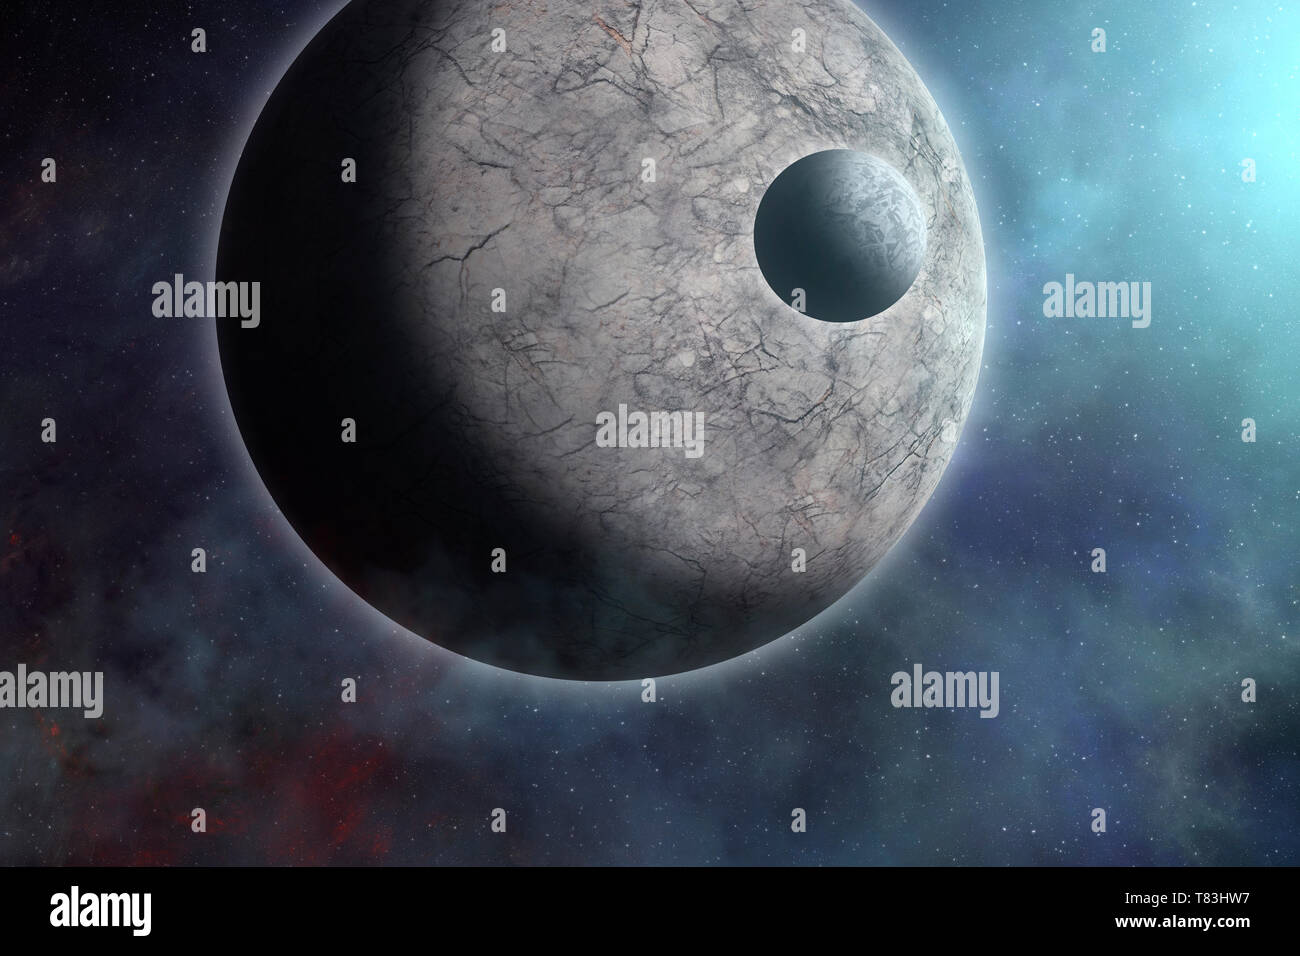 Space sci-fi fantasy background with planet, moon and stars. Rocky planet and satellite near sun. Surreal sci-fi space background - Stock Image